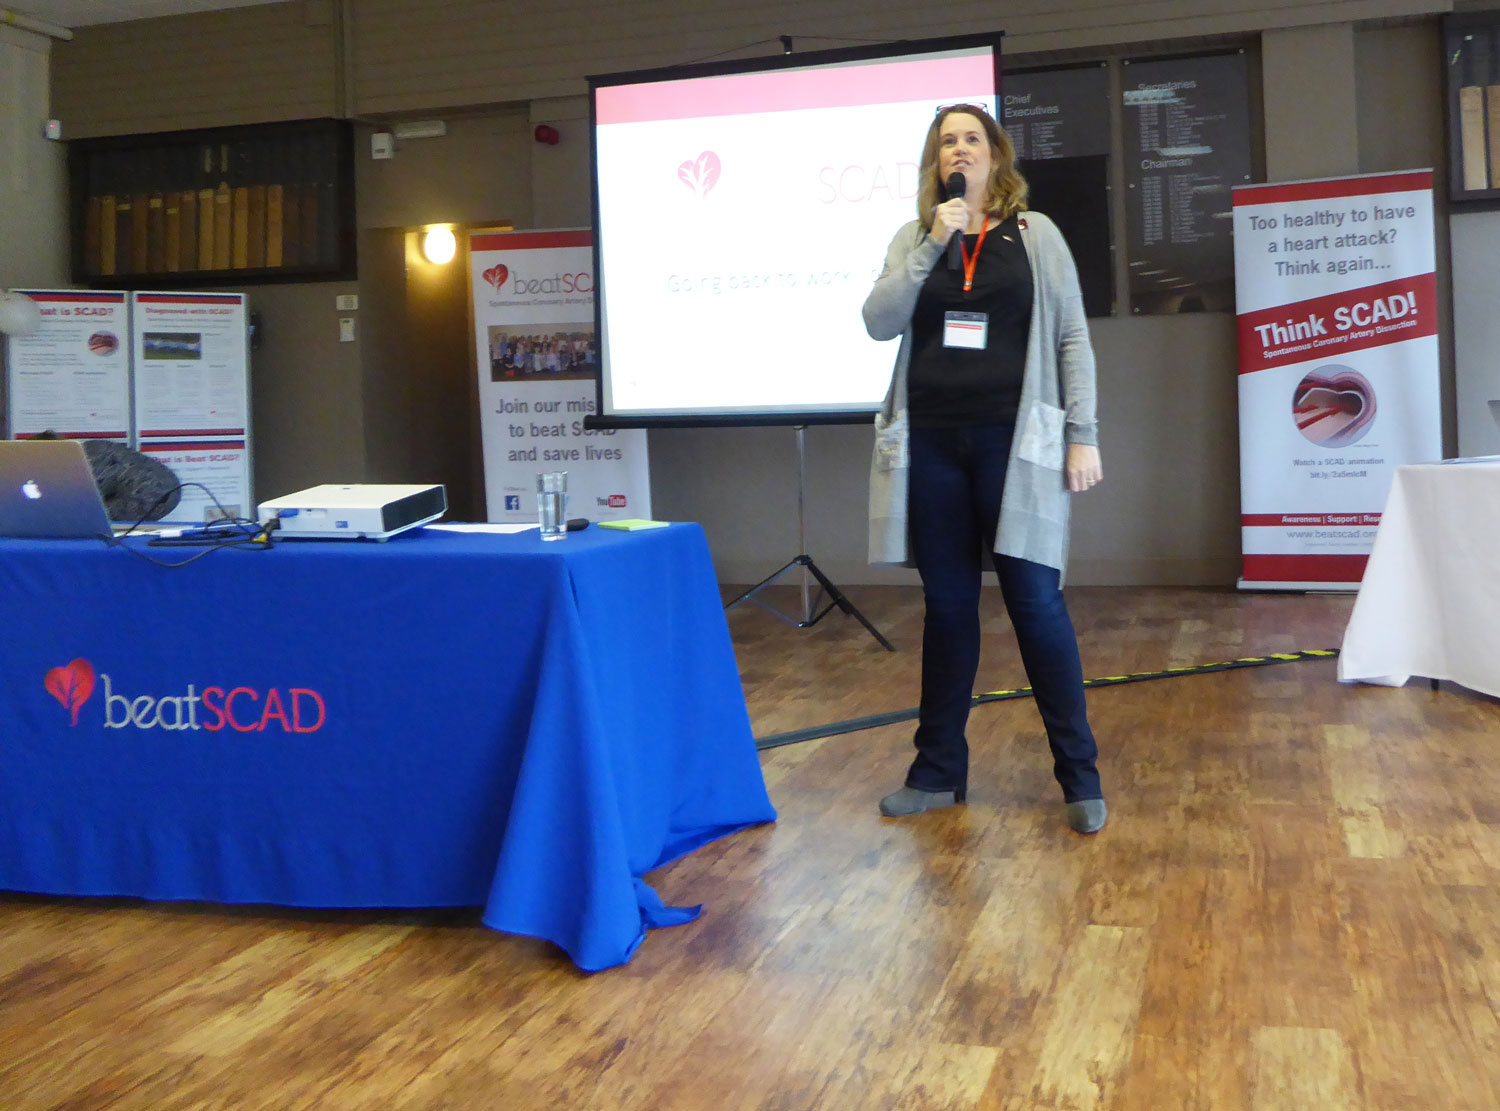 Harriet Mulvaney gave some advice on how to approach returning to work following a SCAD event